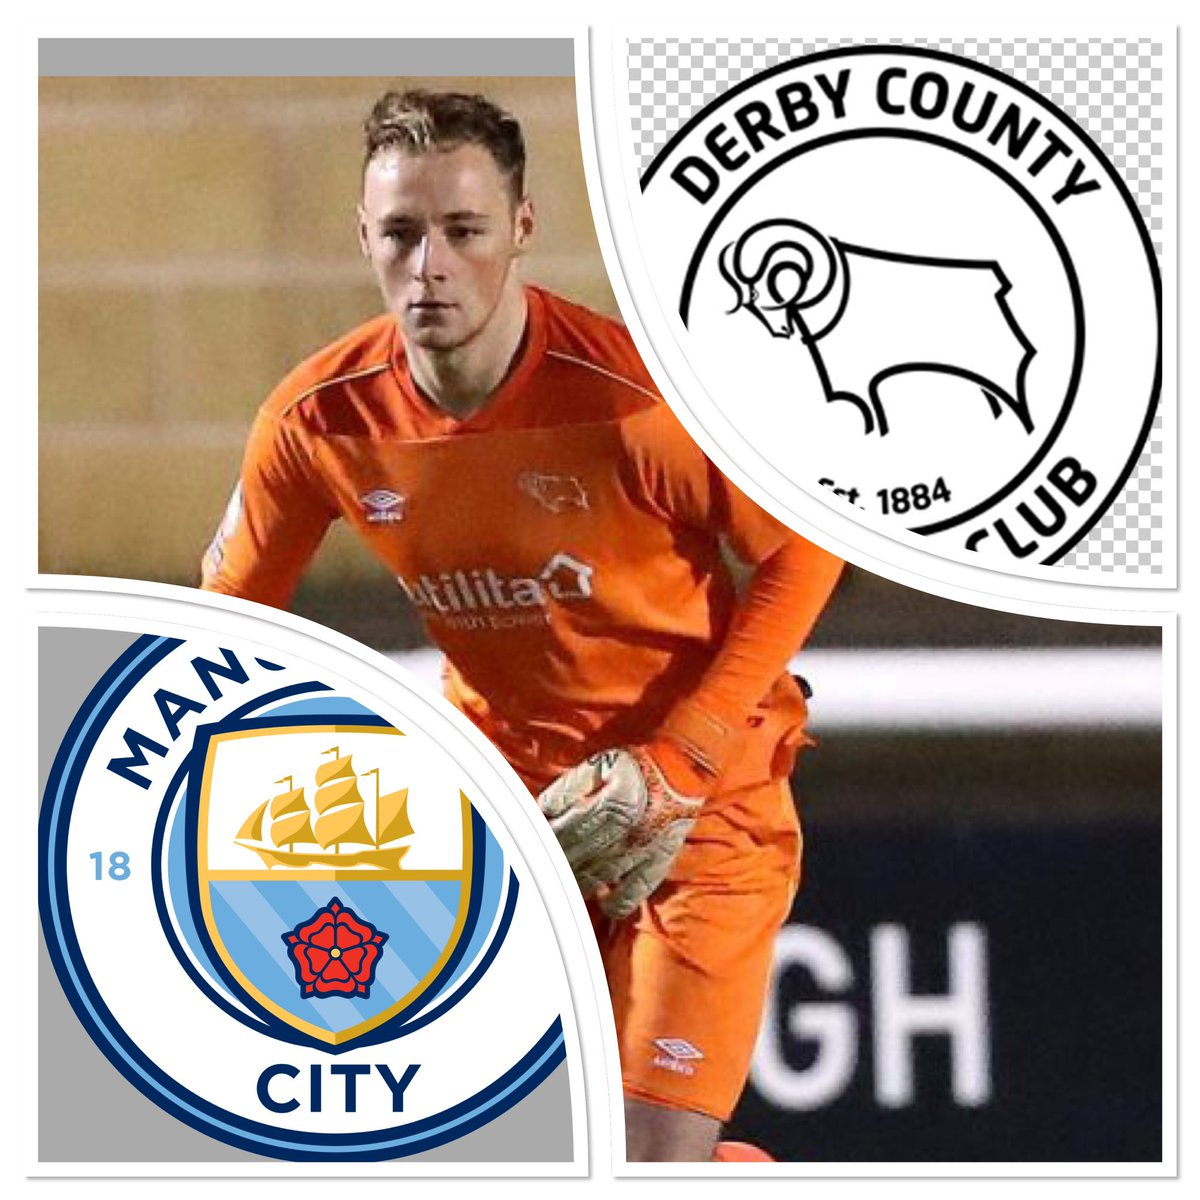 Looking forward to #DerbyCounty v #ManchesterCity #U23s in #PL2 tonight ⚽️ #GSK @SykesKenworthy in the squad ⚽️ @Ab1Gk @UmbroUK @ManCity #GeorgeSykesKenworthy #DCFC #Rams @dcfcacademy @dcfcofficial ⚽️ Catch On #RAMSTV 📺 #TeamDDG